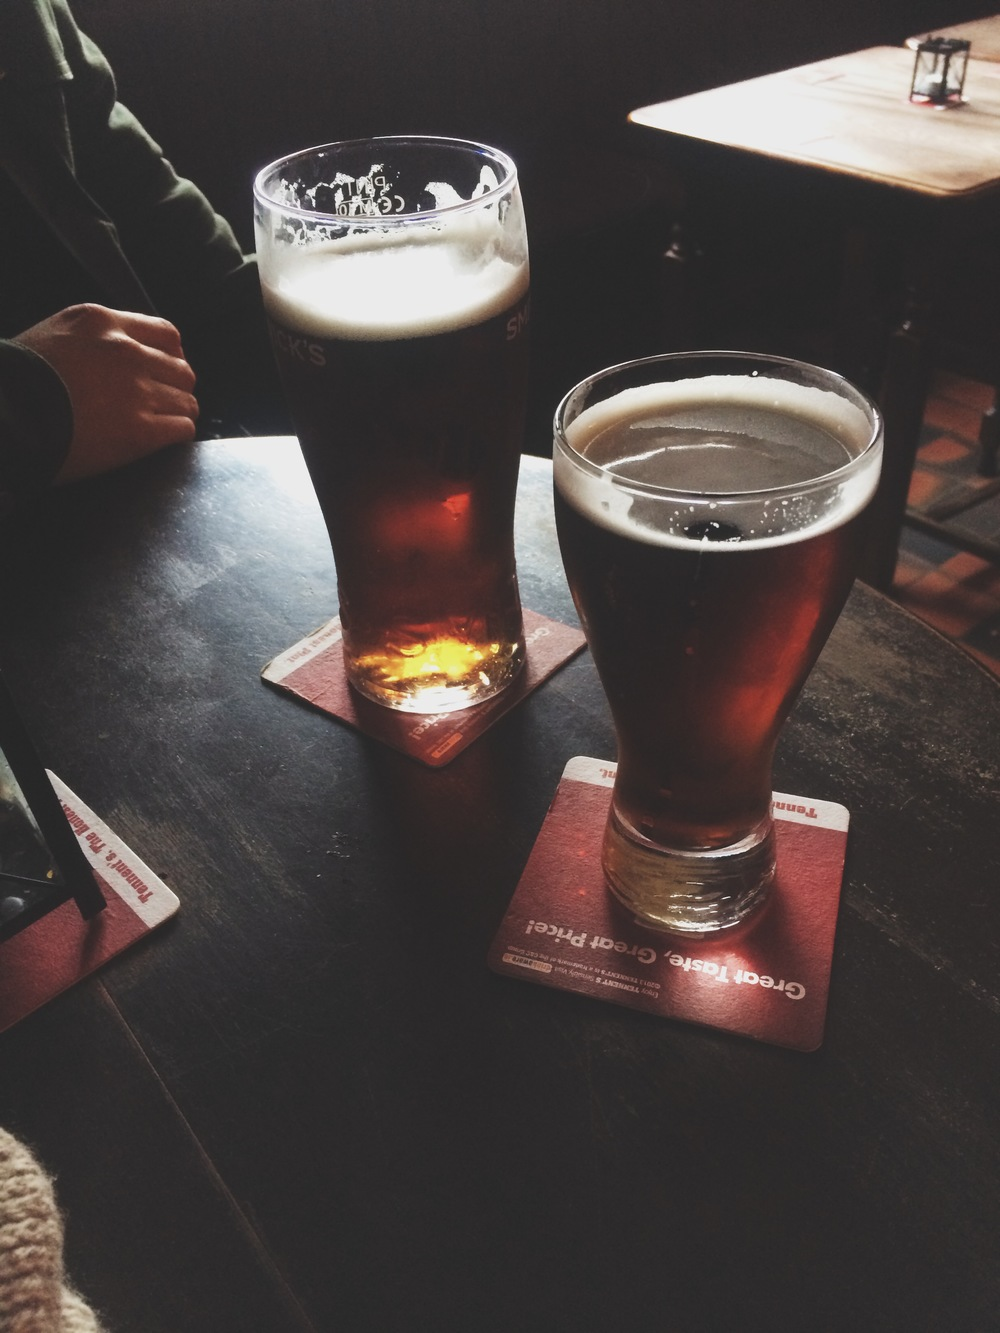 We tried a lot of different beers but Smithwicks became one of our favorites